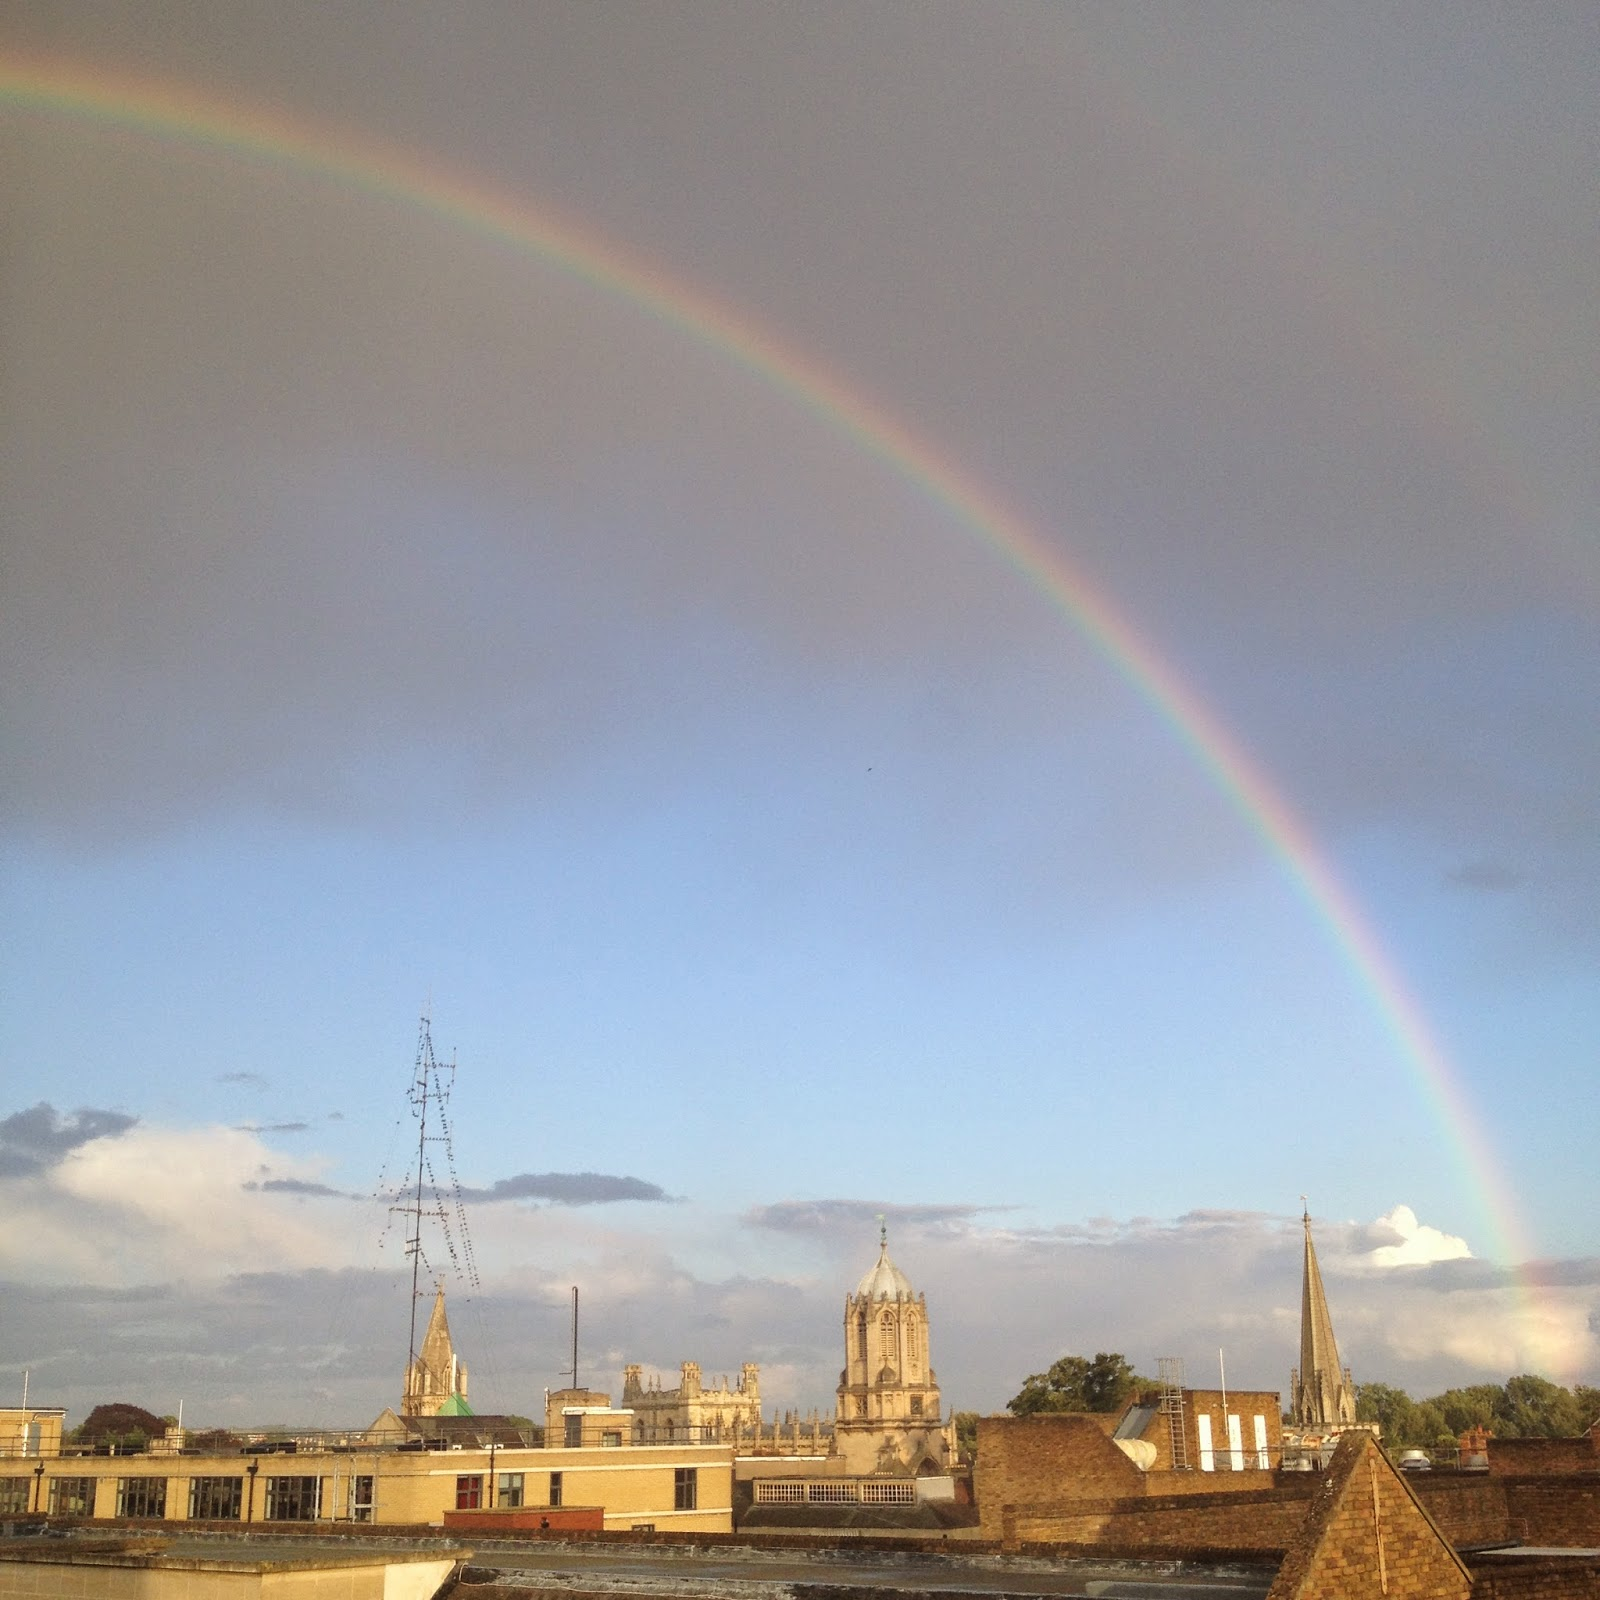 Oxford rainbow (photo credit: http://researchandramblings.blogspot.com/)